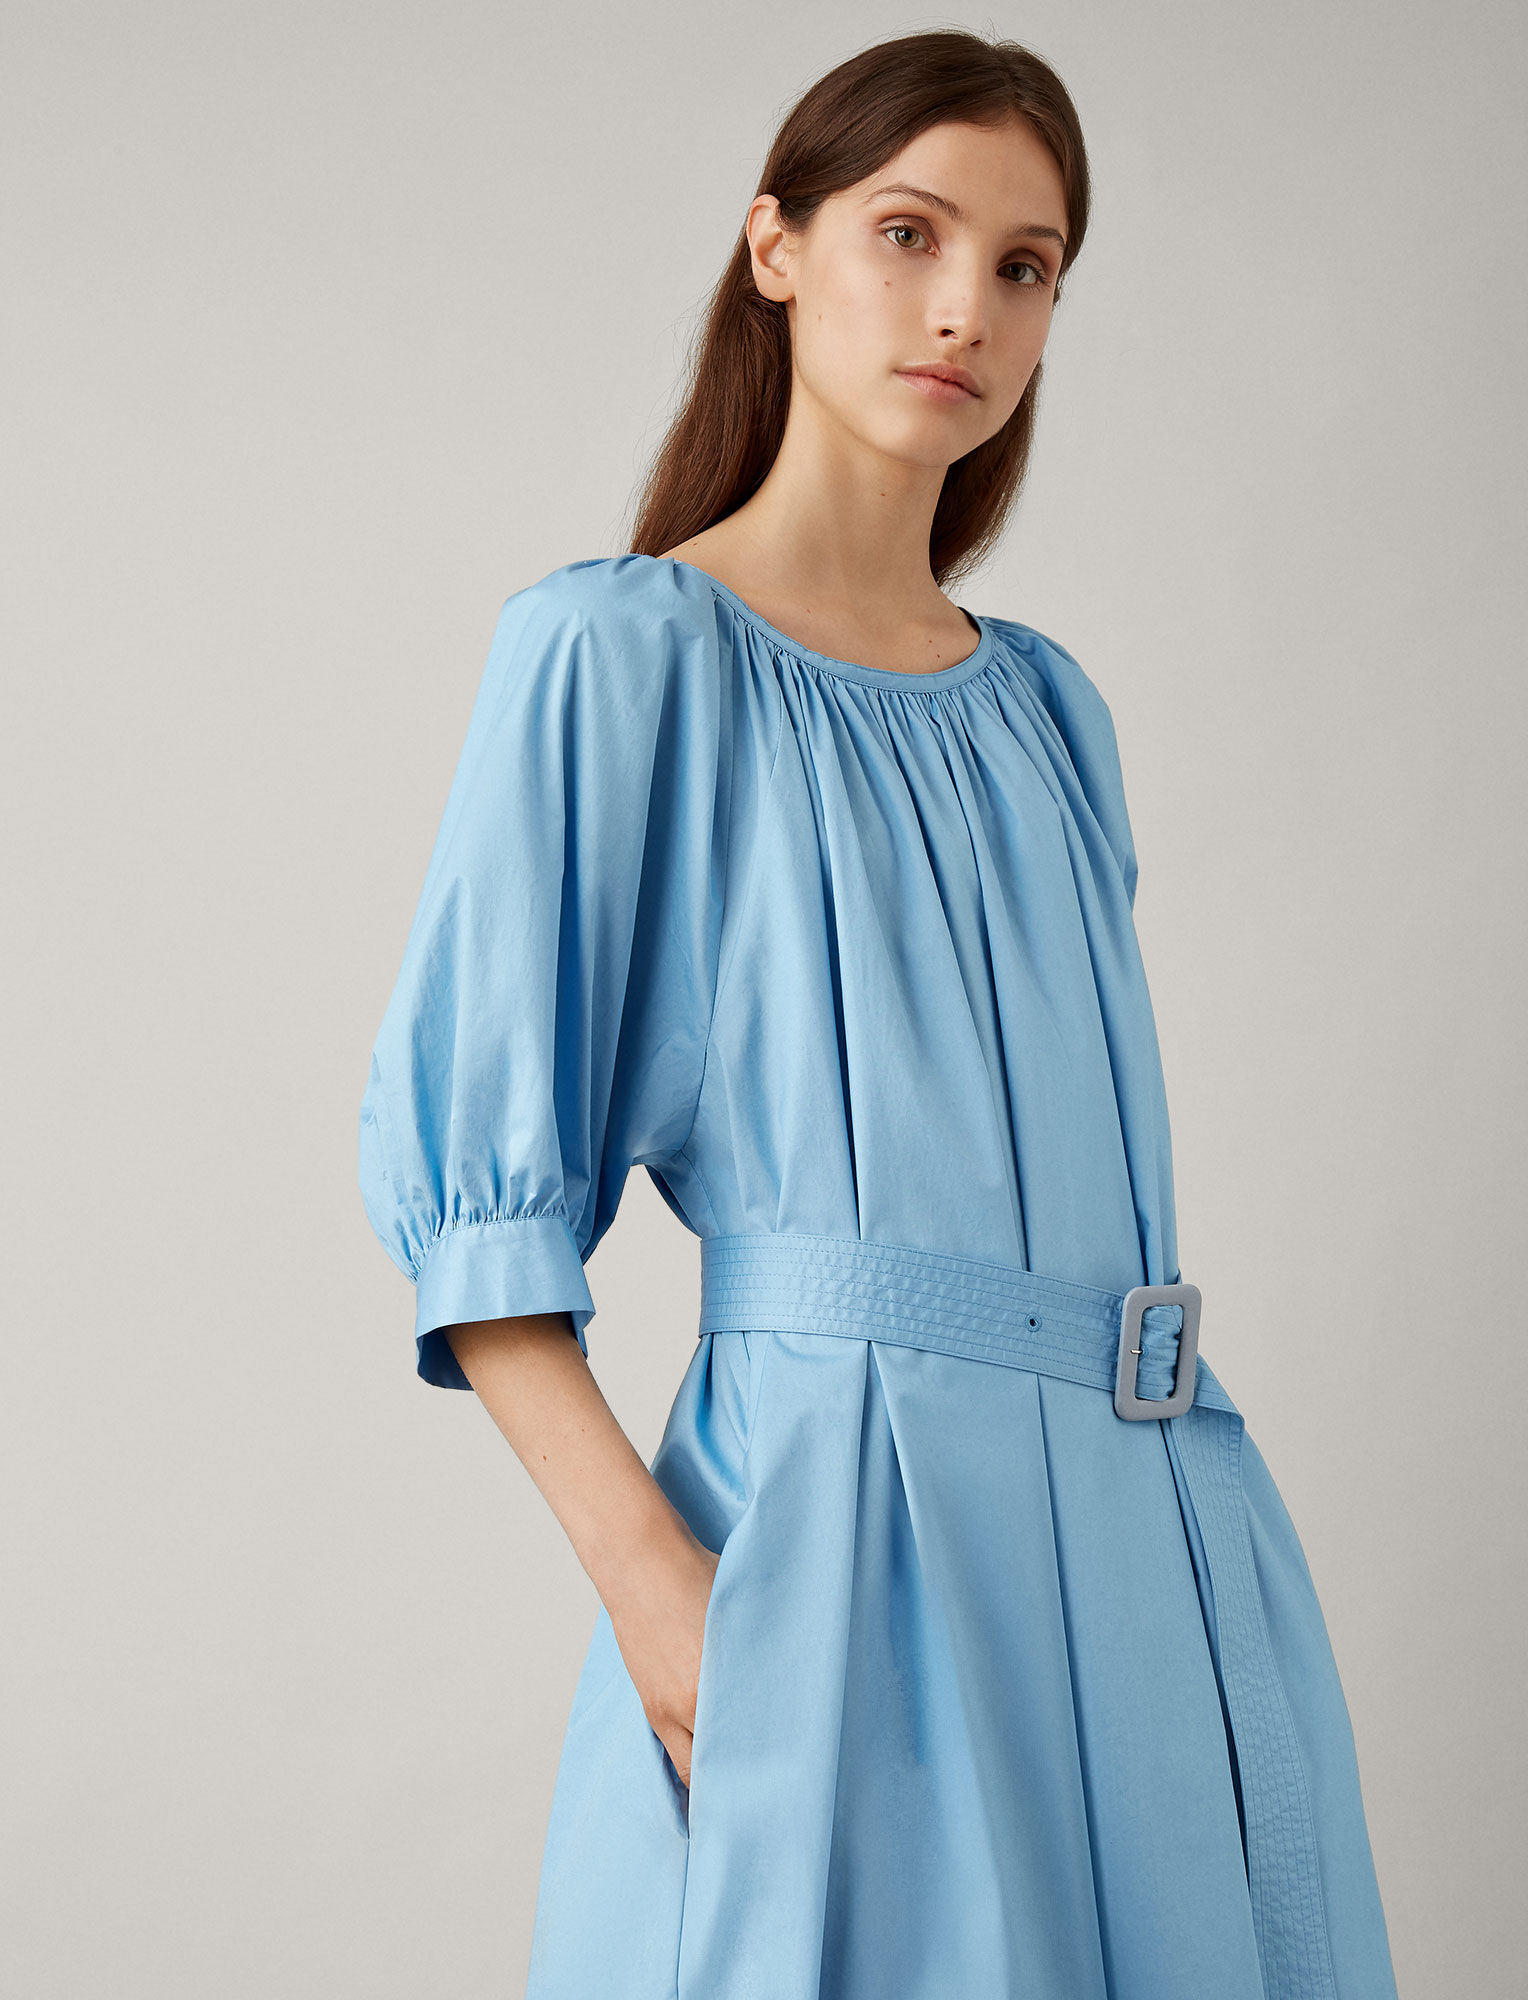 Joseph, Shan Cotton Dress, in CIEL